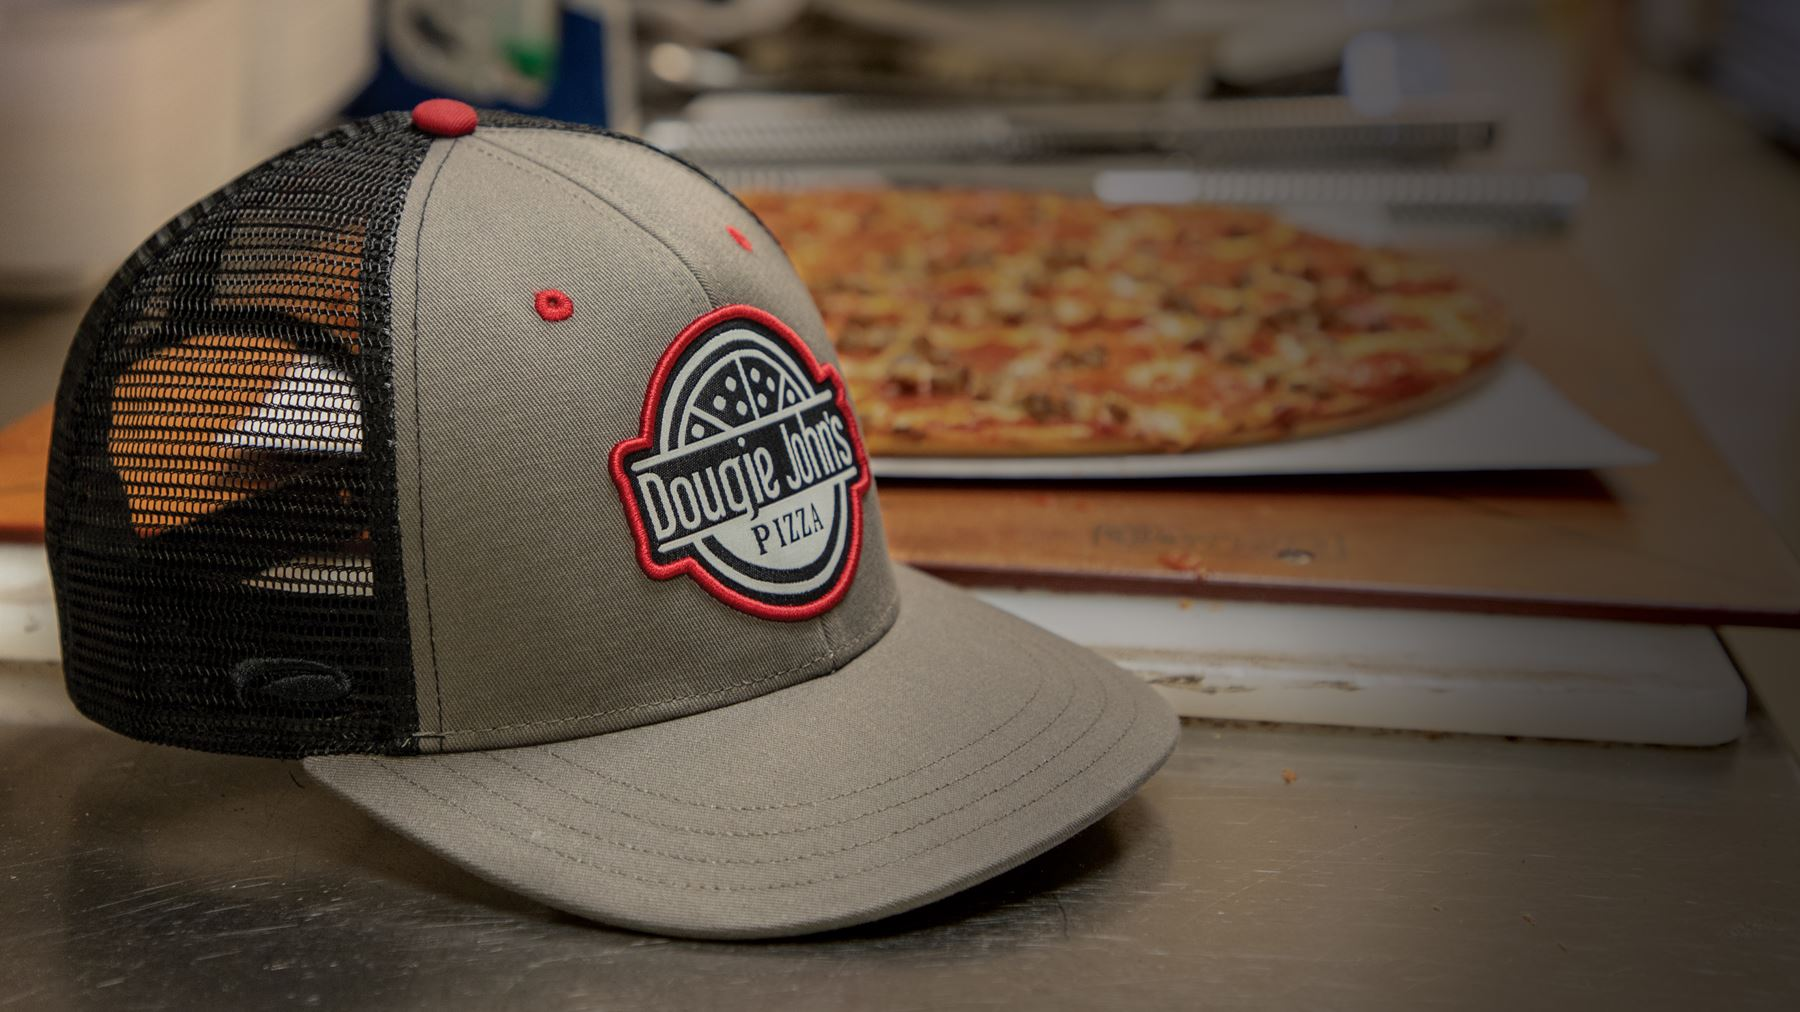 Hat sitting with pizza on work surface